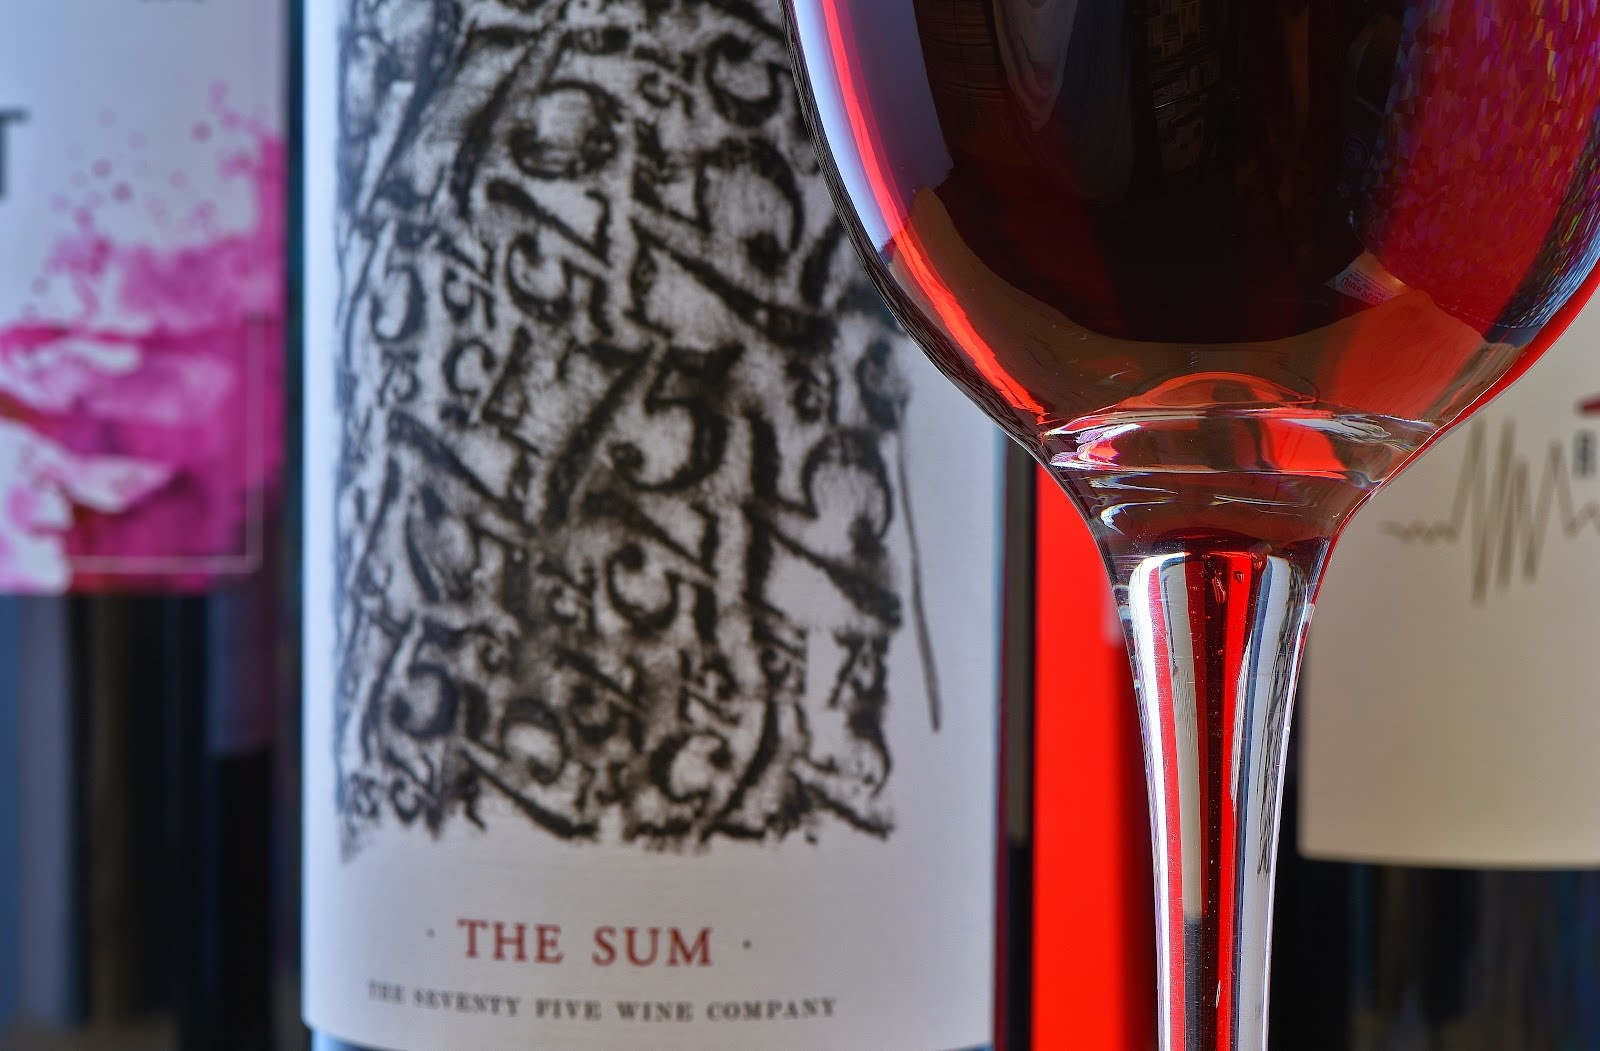 75 Wine Company, The Sum